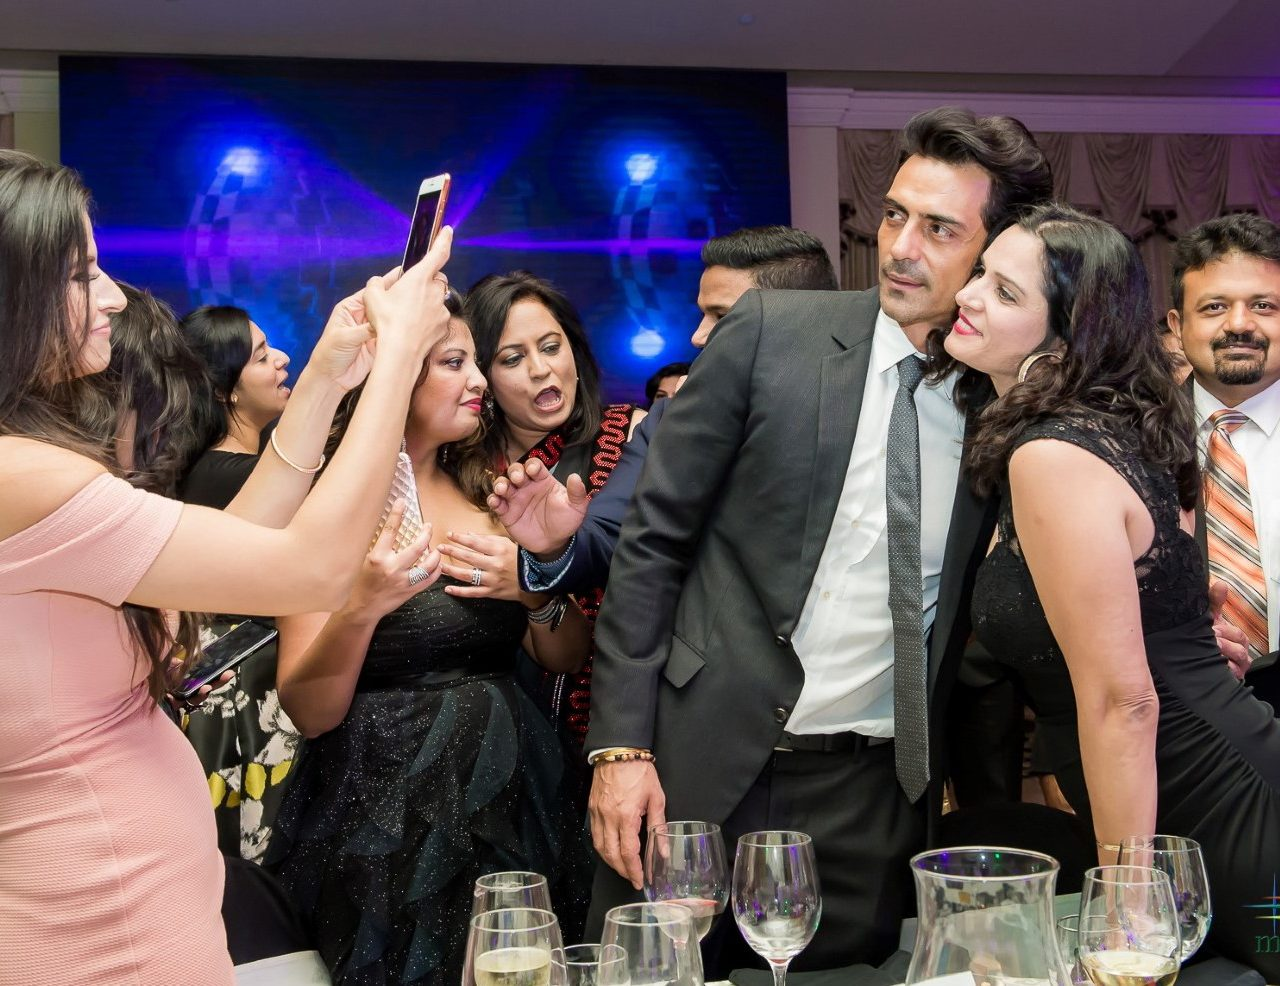 Air kisses and plenty of flirtation: Arjun Rampal Mesmerizes Houstonians With His Generosity At CRY Foundation Gala Dinner